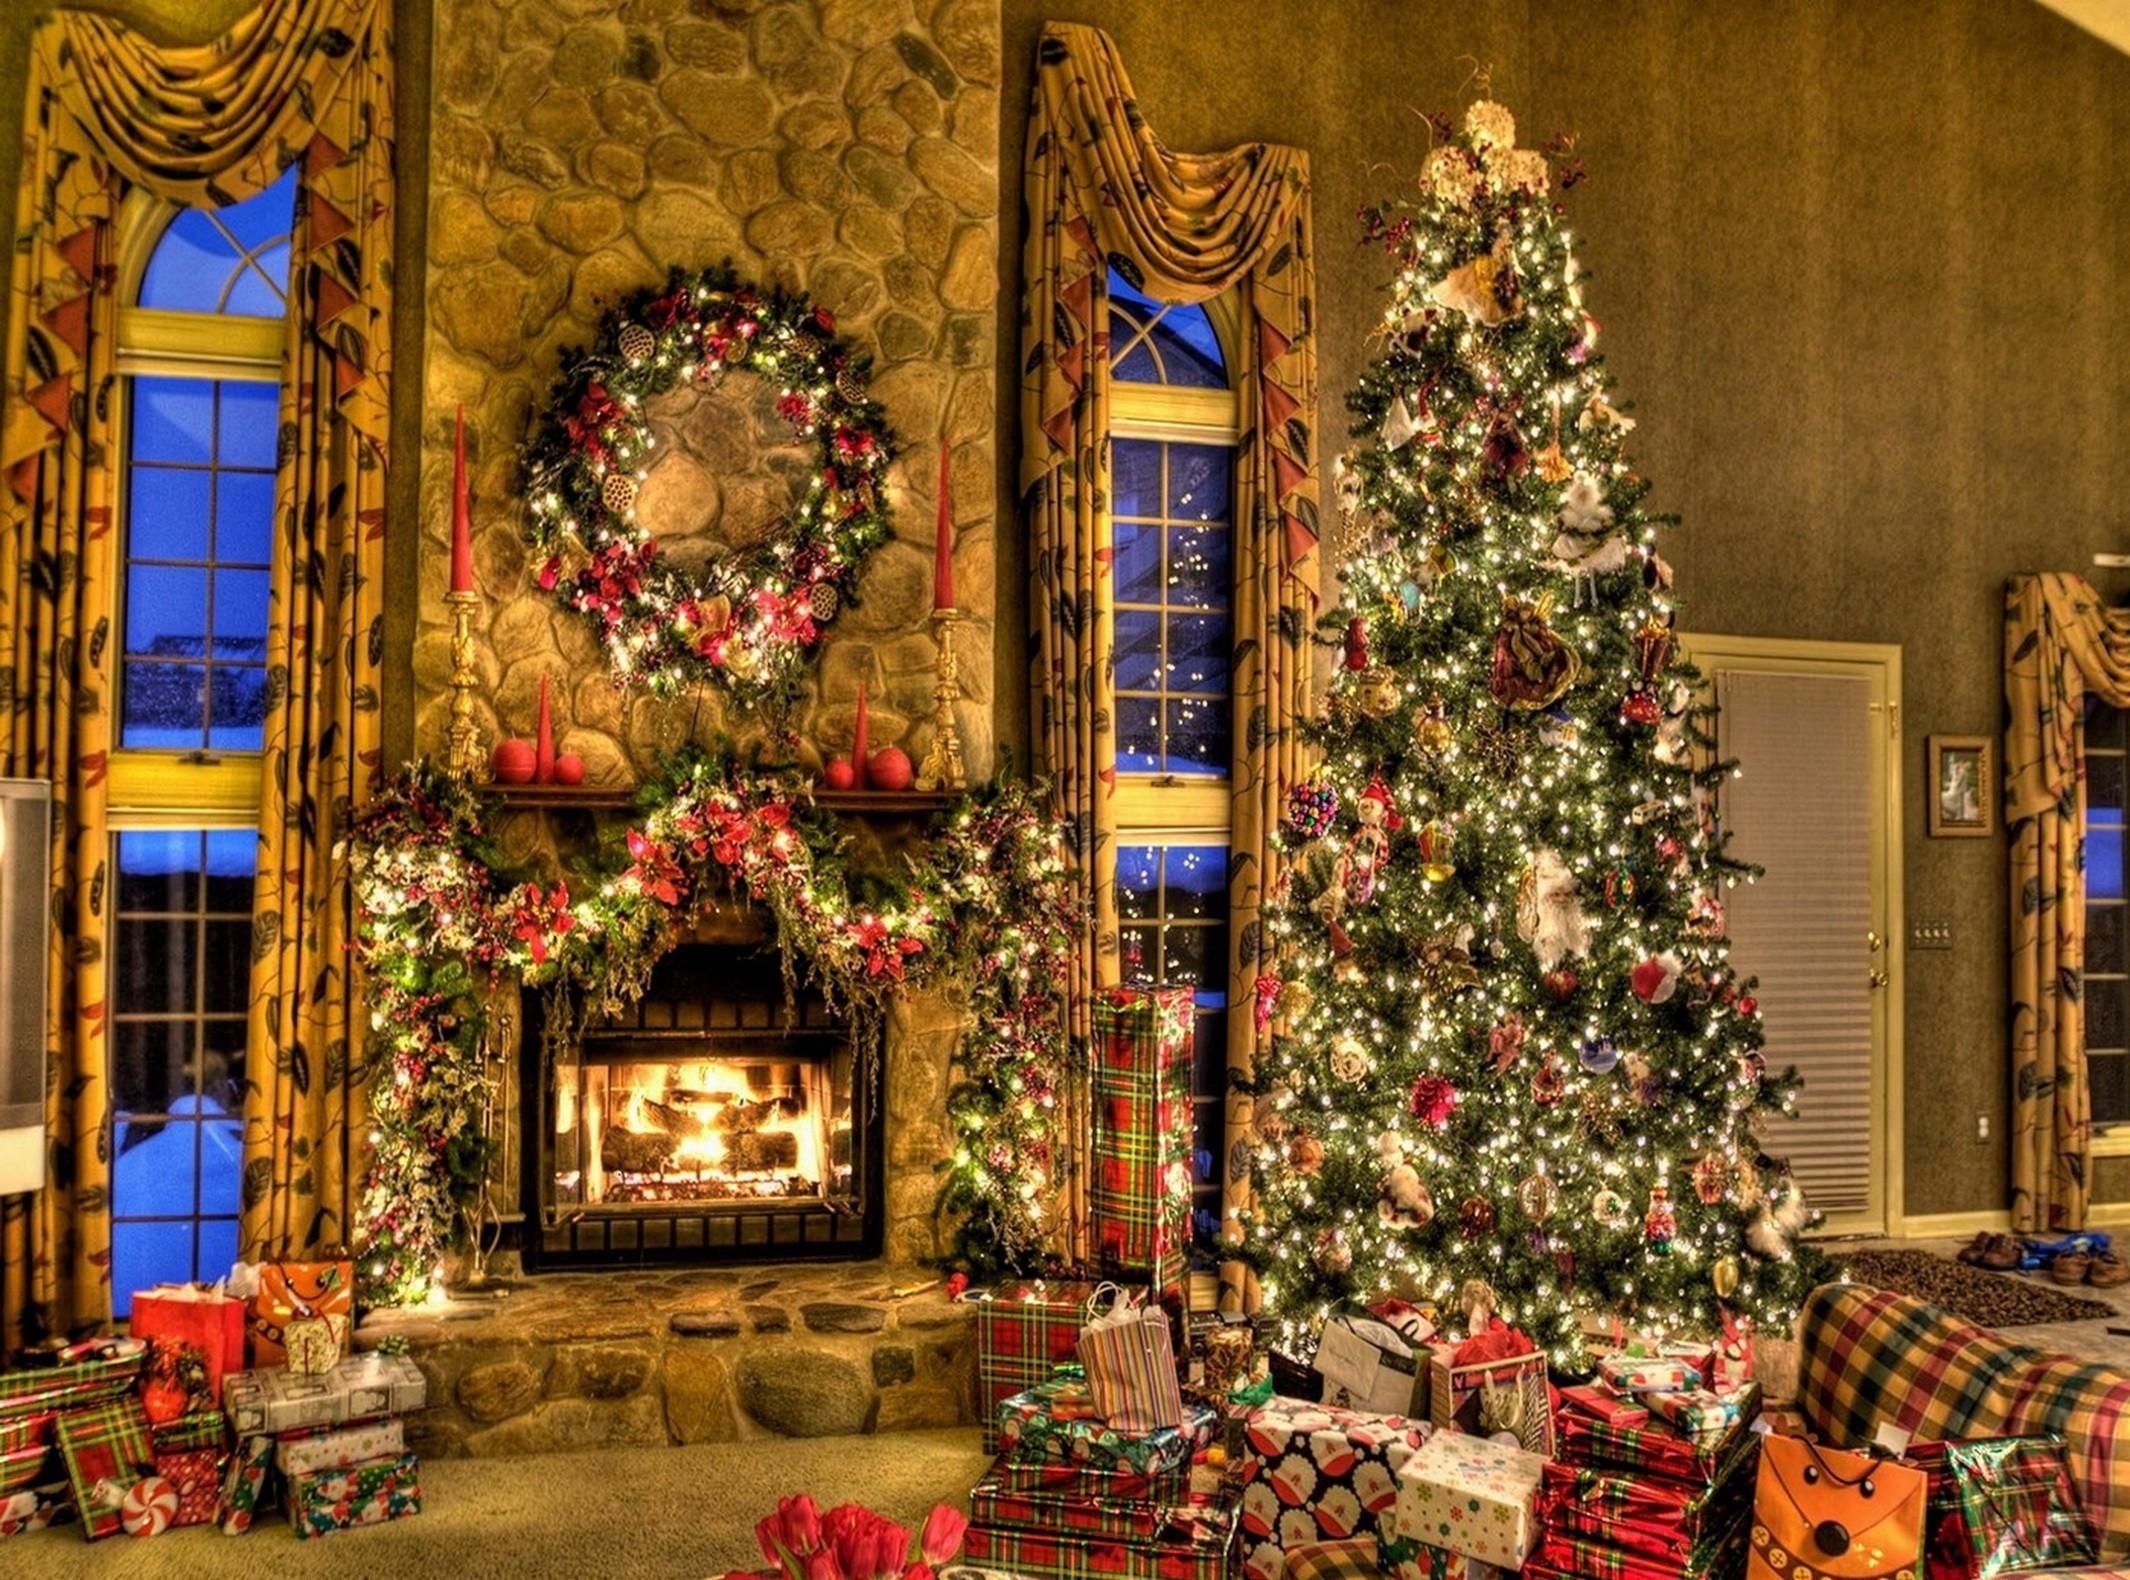 Chimney clipart christmas tree fireplace. Images of decorated homes